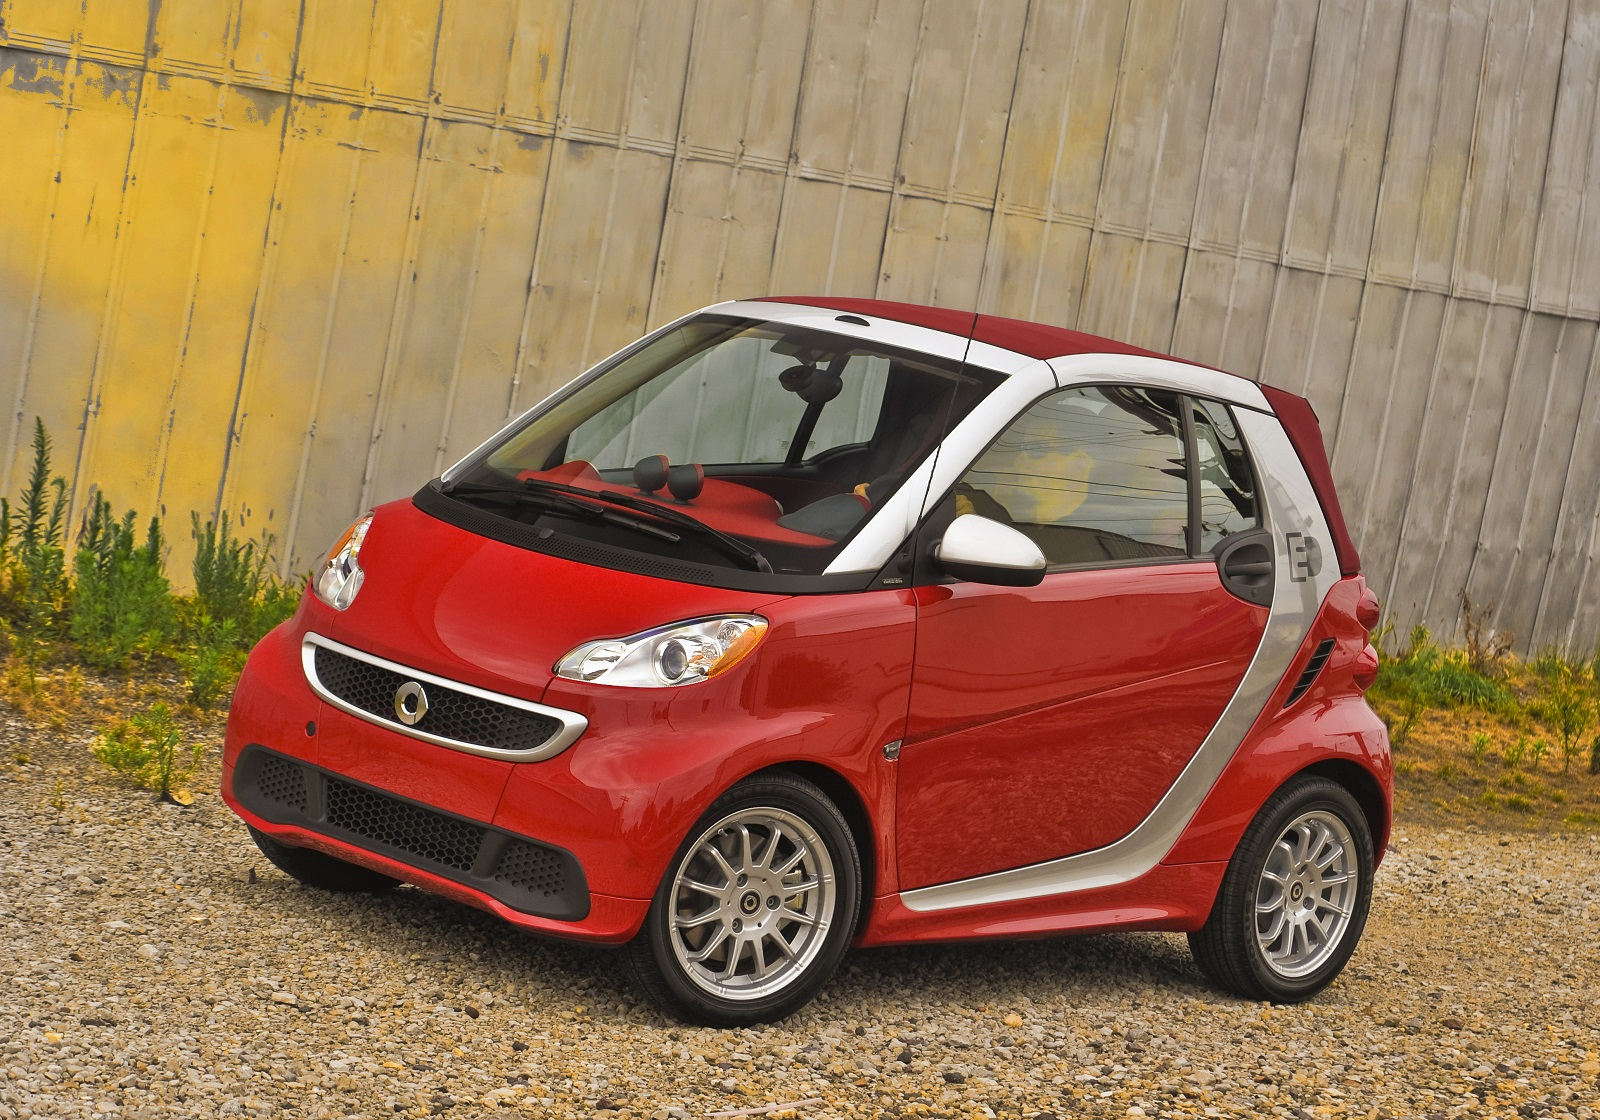 2014 smart fortwo review ratings specs prices and photos the car connection. Black Bedroom Furniture Sets. Home Design Ideas